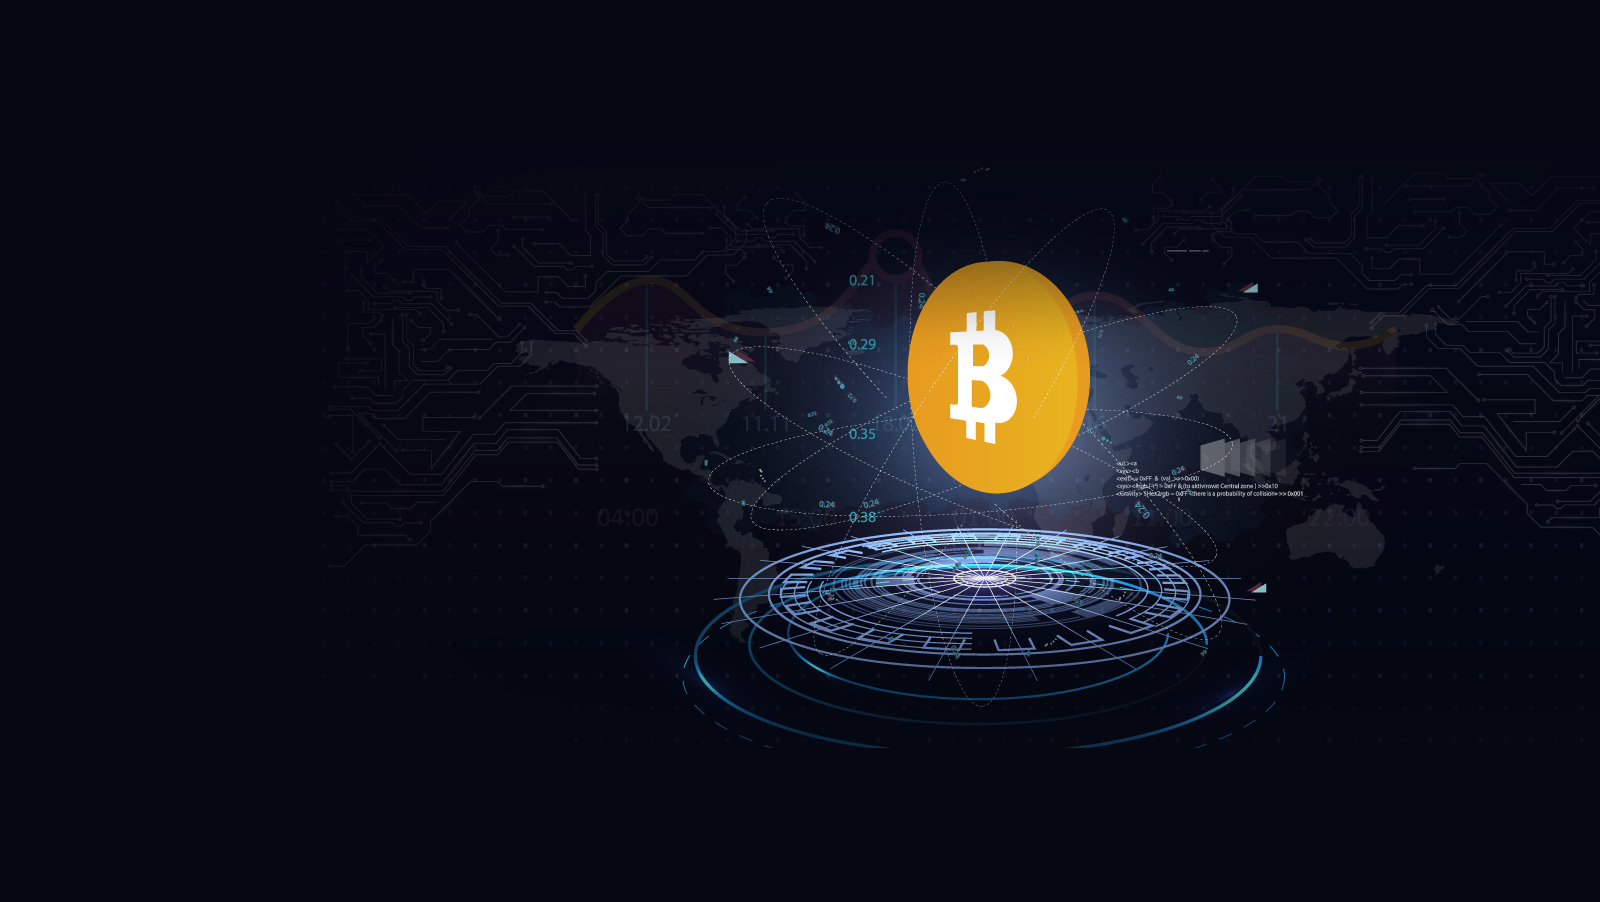 Ignition bitcoin wallet